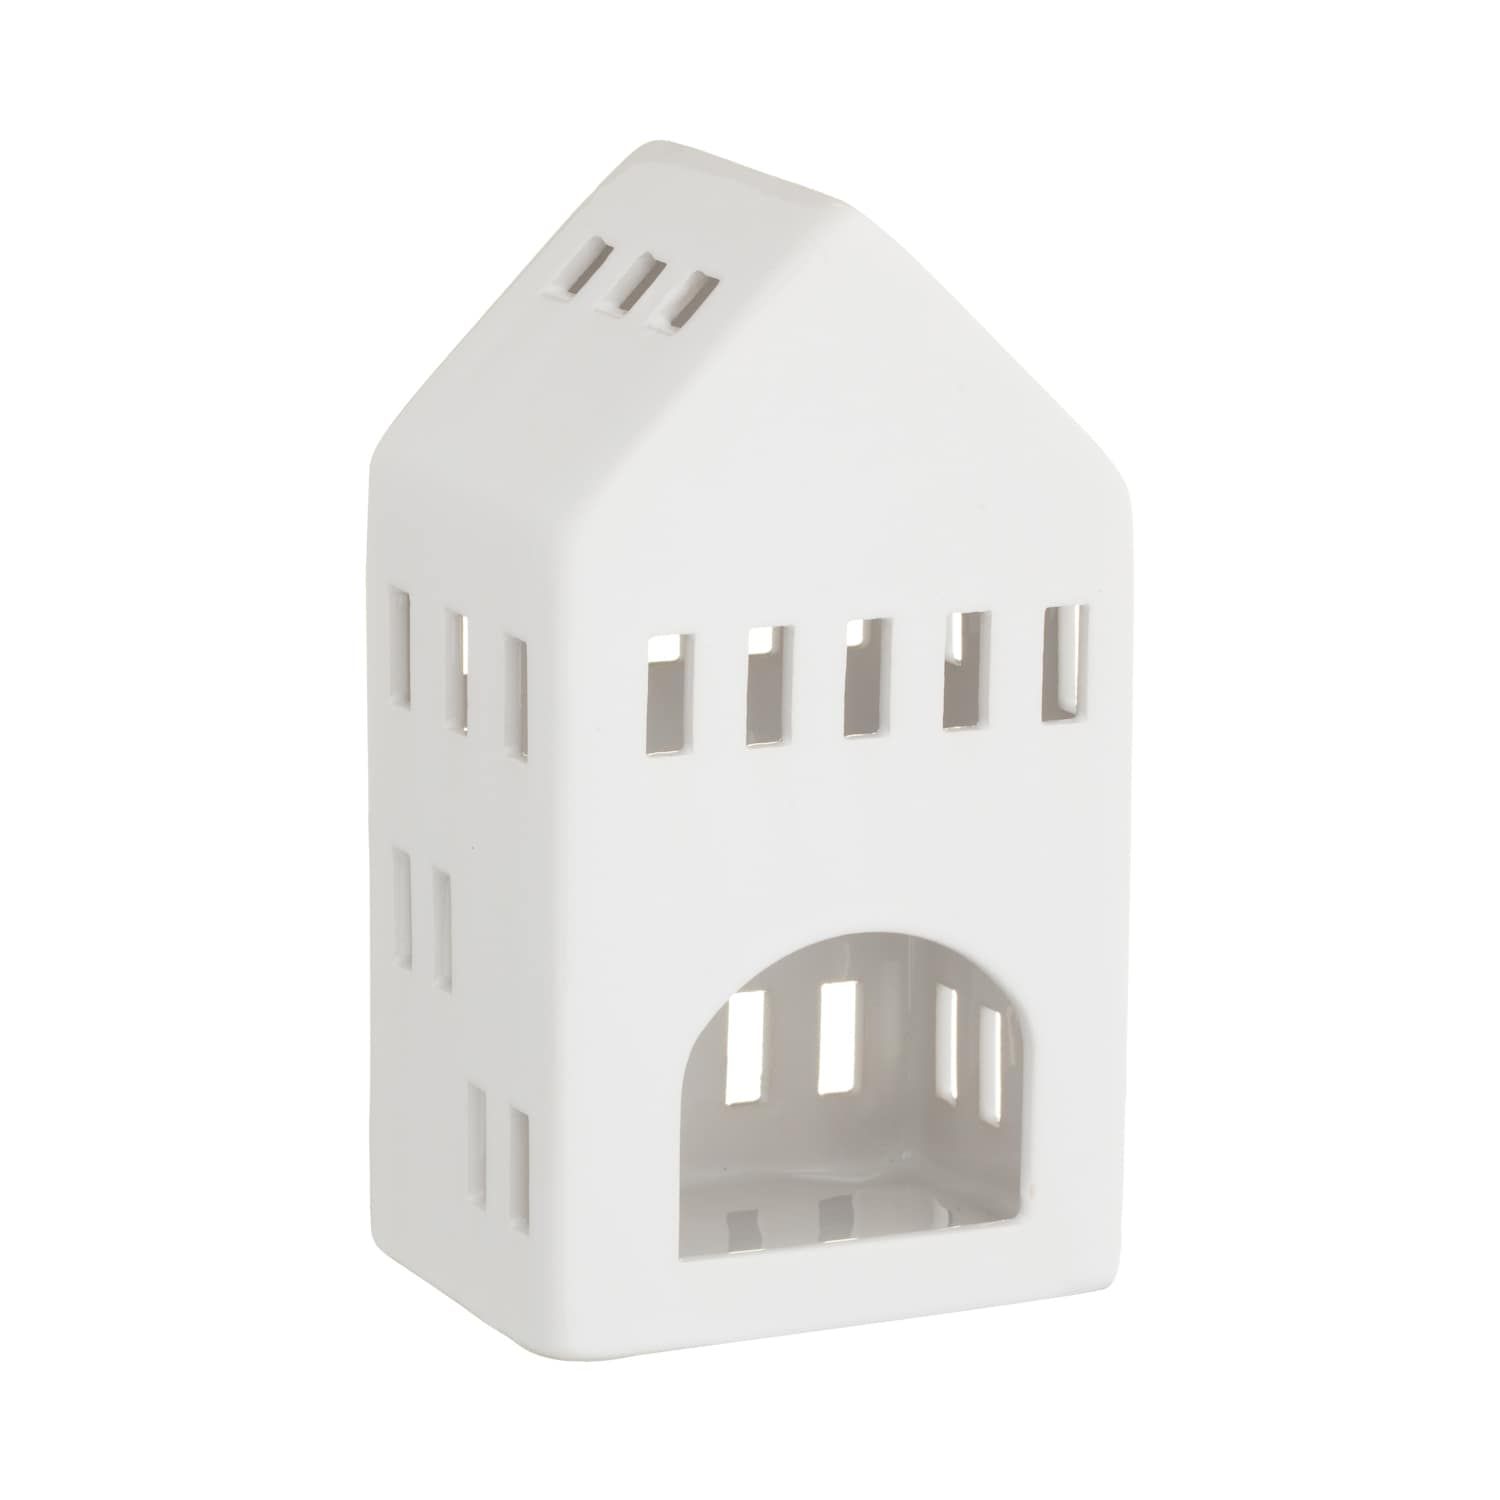 Ceramic House Tealight Holder Small Candle Holders B M